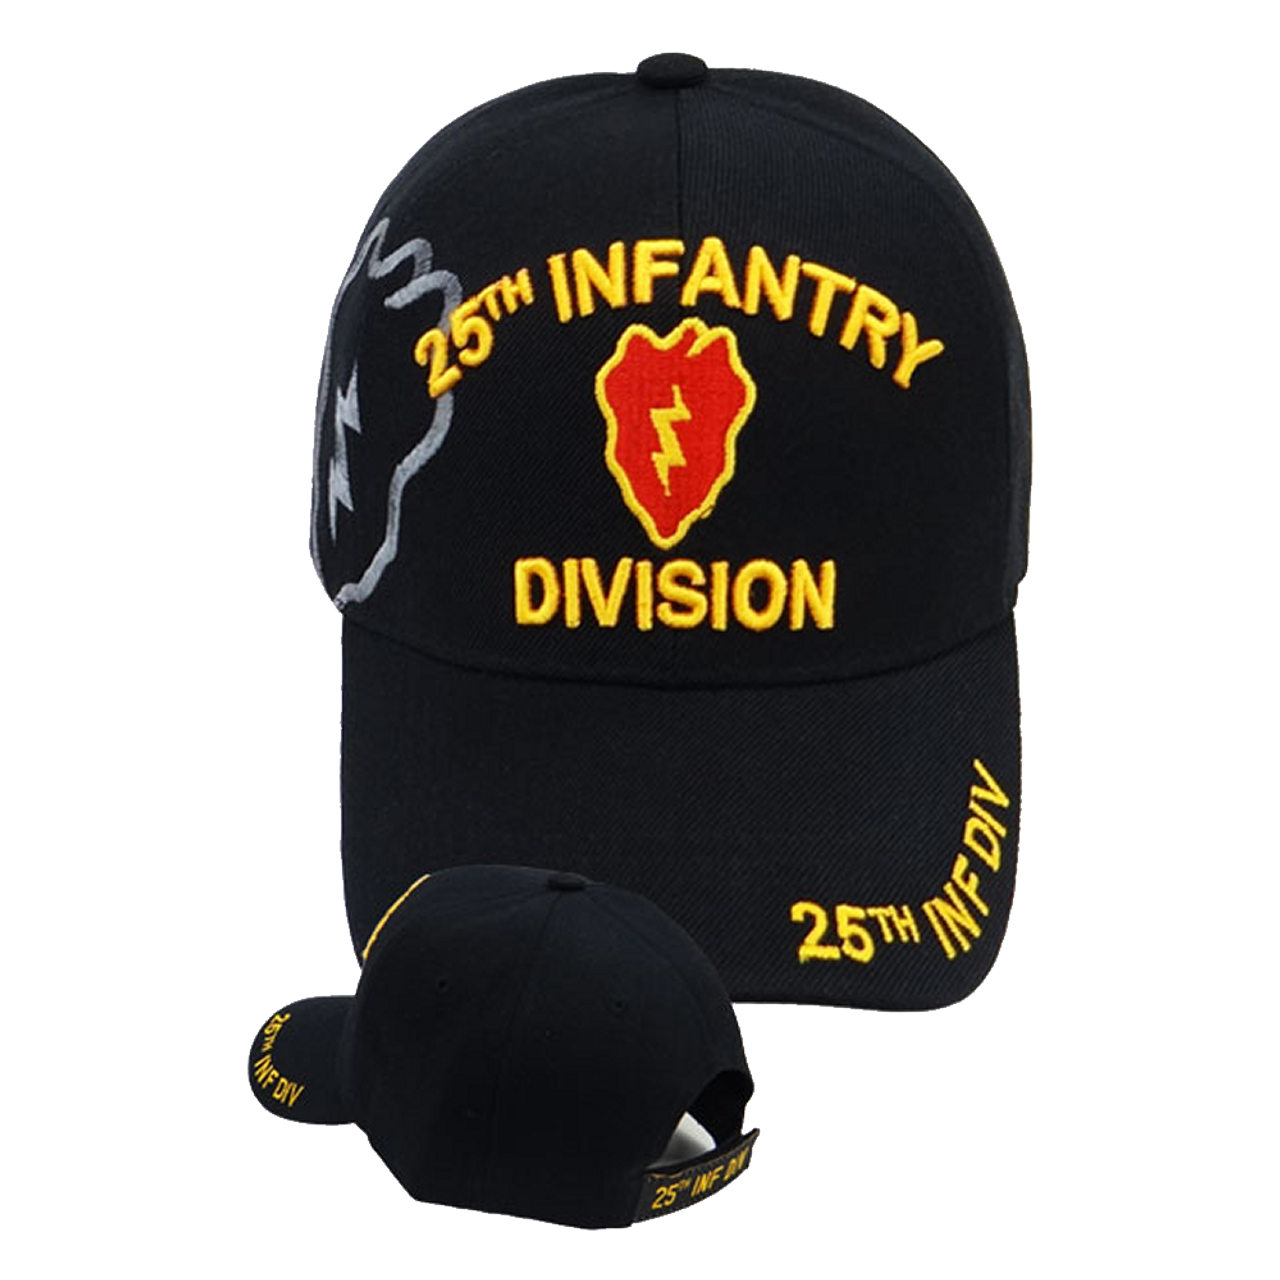 25th Infantry Division Shadow Cap - Black